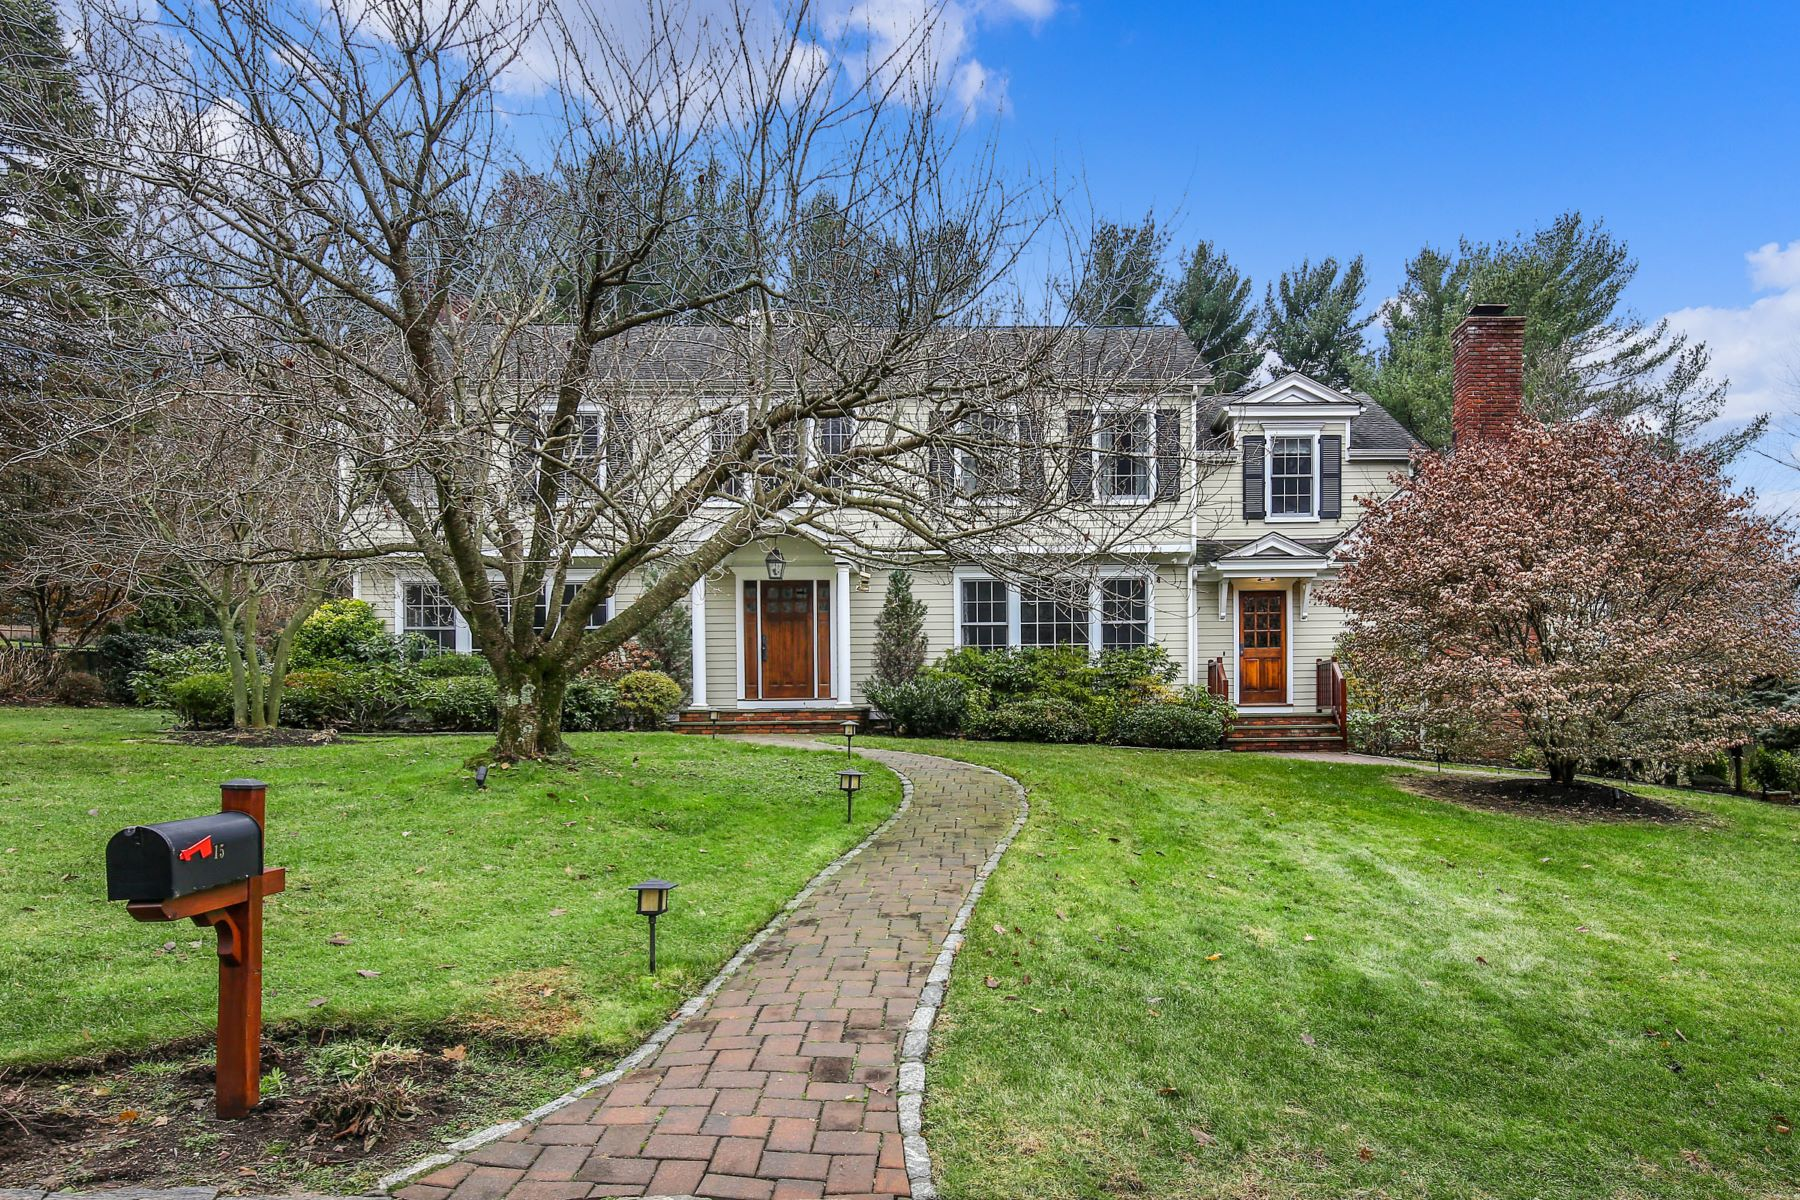 Single Family Homes for Sale at Curb Appeal Abounds! 15 Old Farm Lane Hartsdale, New York 10530 United States